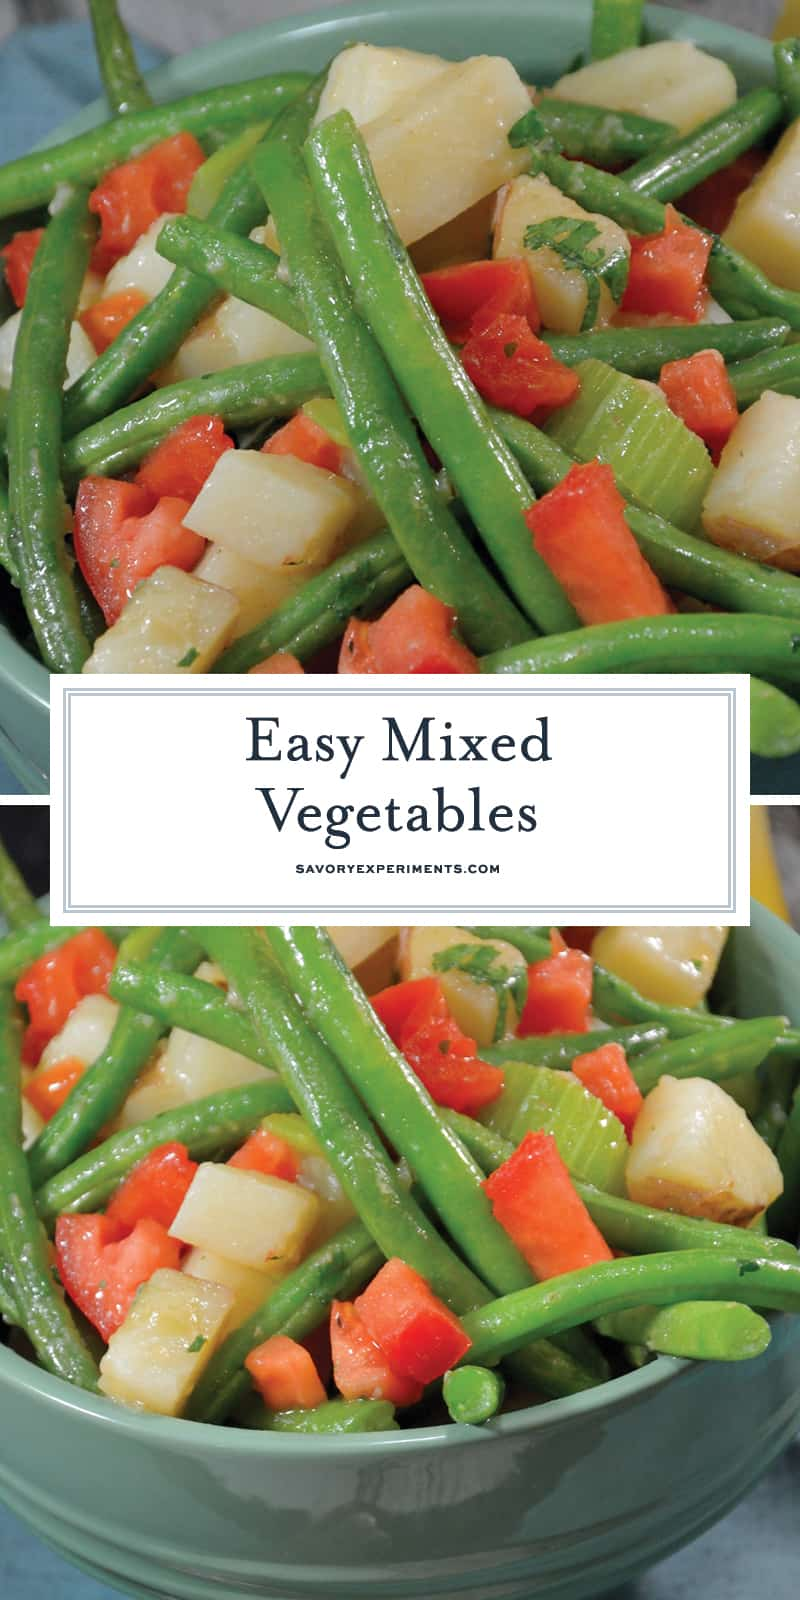 This Mixed Vegetables Recipe is a great side dish thatincorporatesfour differentvegetableswith a variety of flavors and textures! #mixedvegetables www.savoryexperiments.com